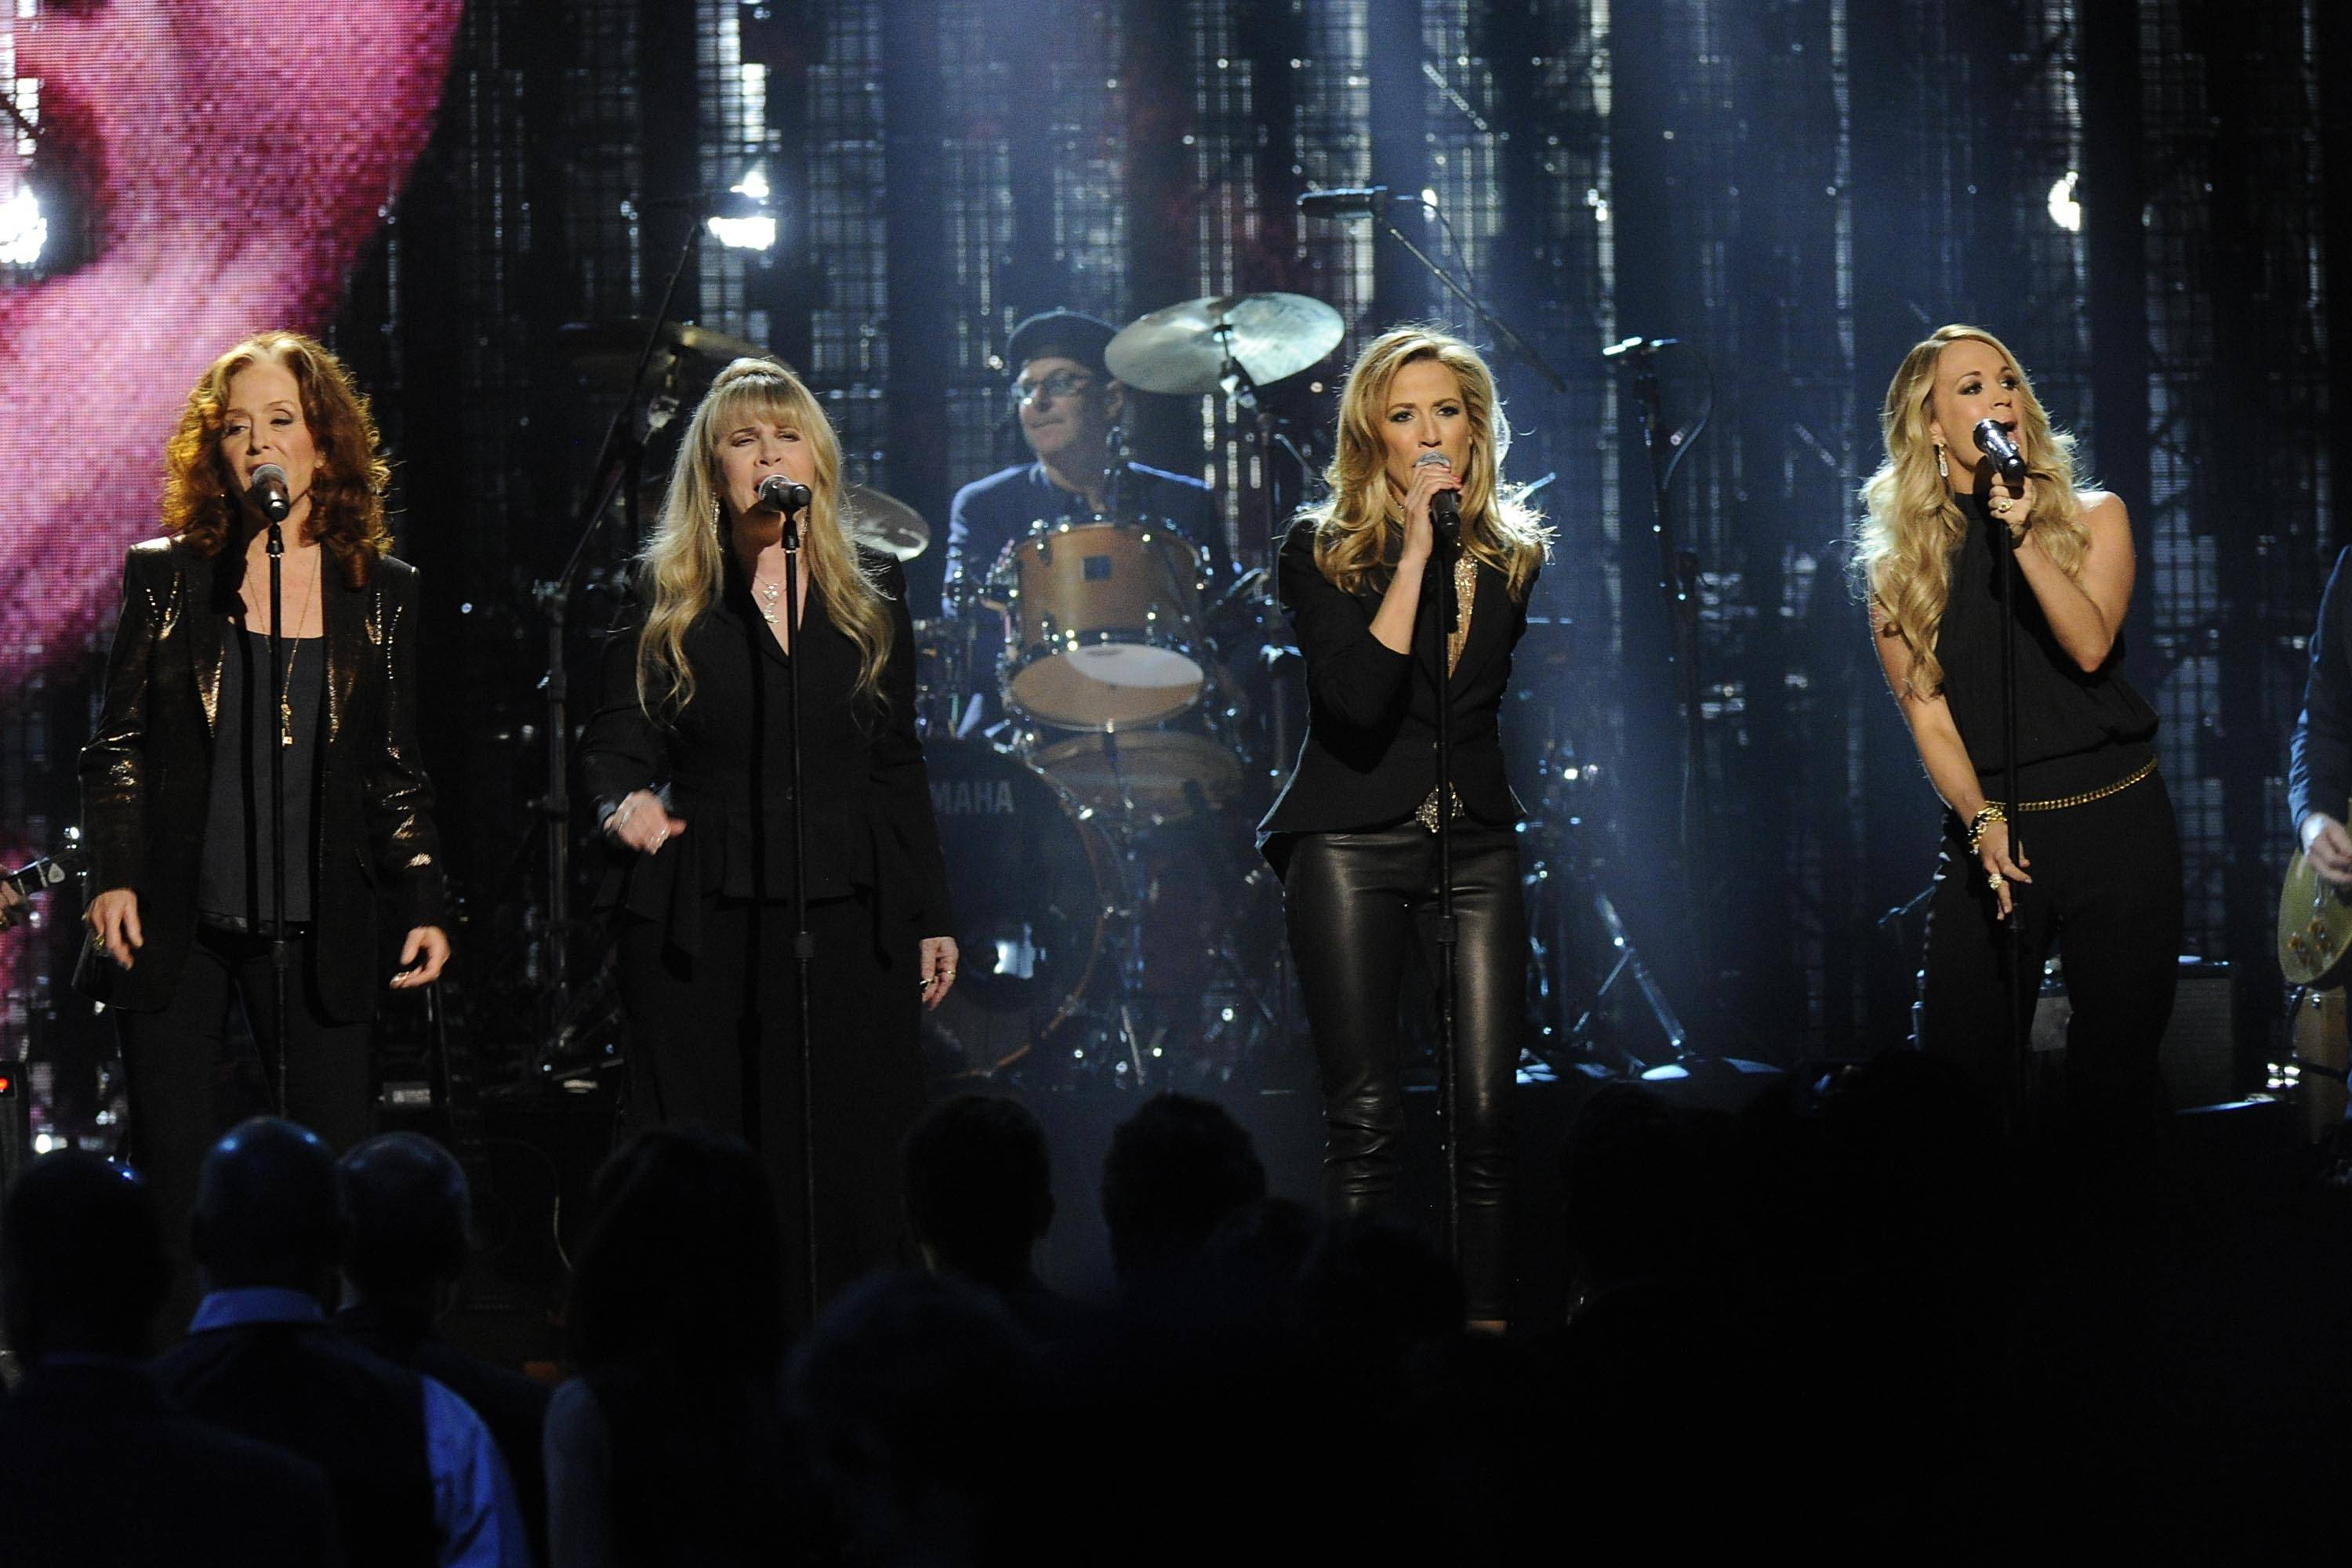 Bonnie Raitt, Stevie Nicks, Sheryl Crow and Carrie Underwood performed at the 2014 Rock and Roll Hall of Fame Induction Ceremony on Thursday.